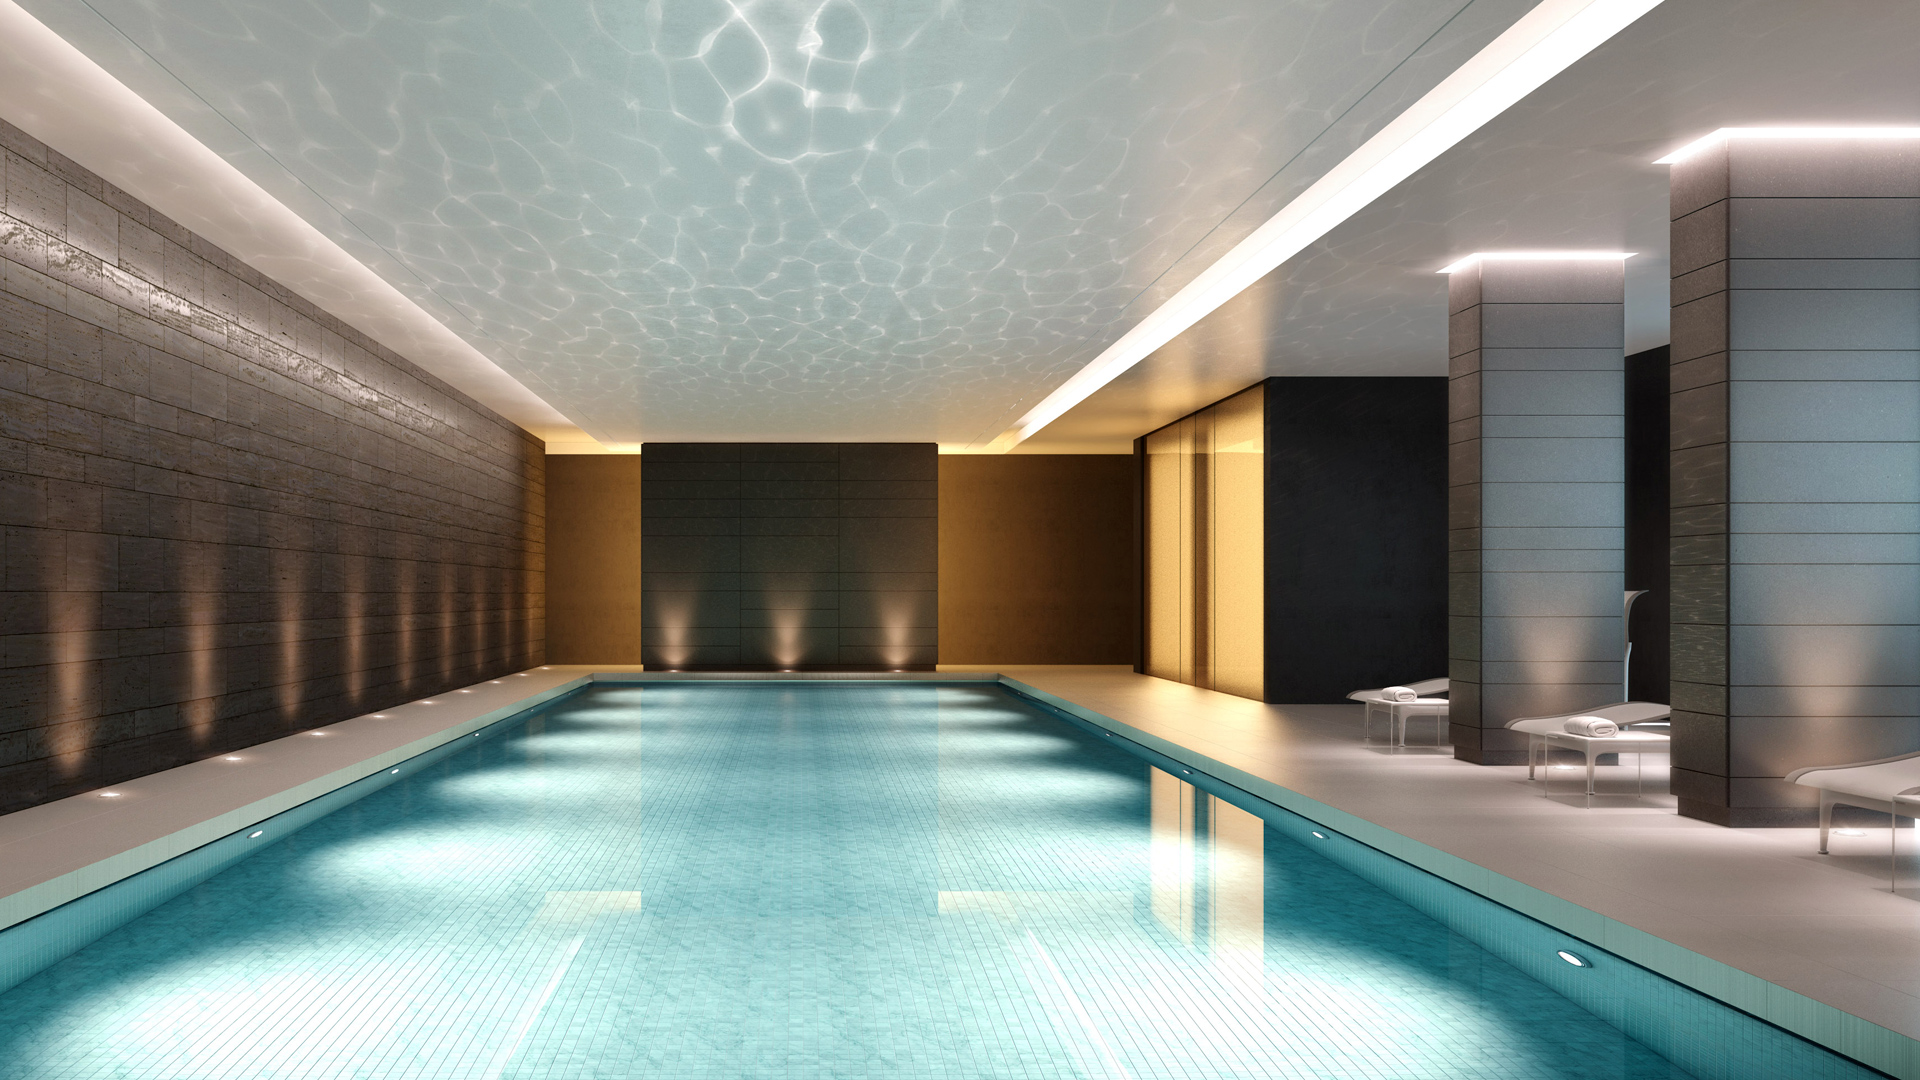 Basement swimming pools 4site london basements Basement swimming pool construction